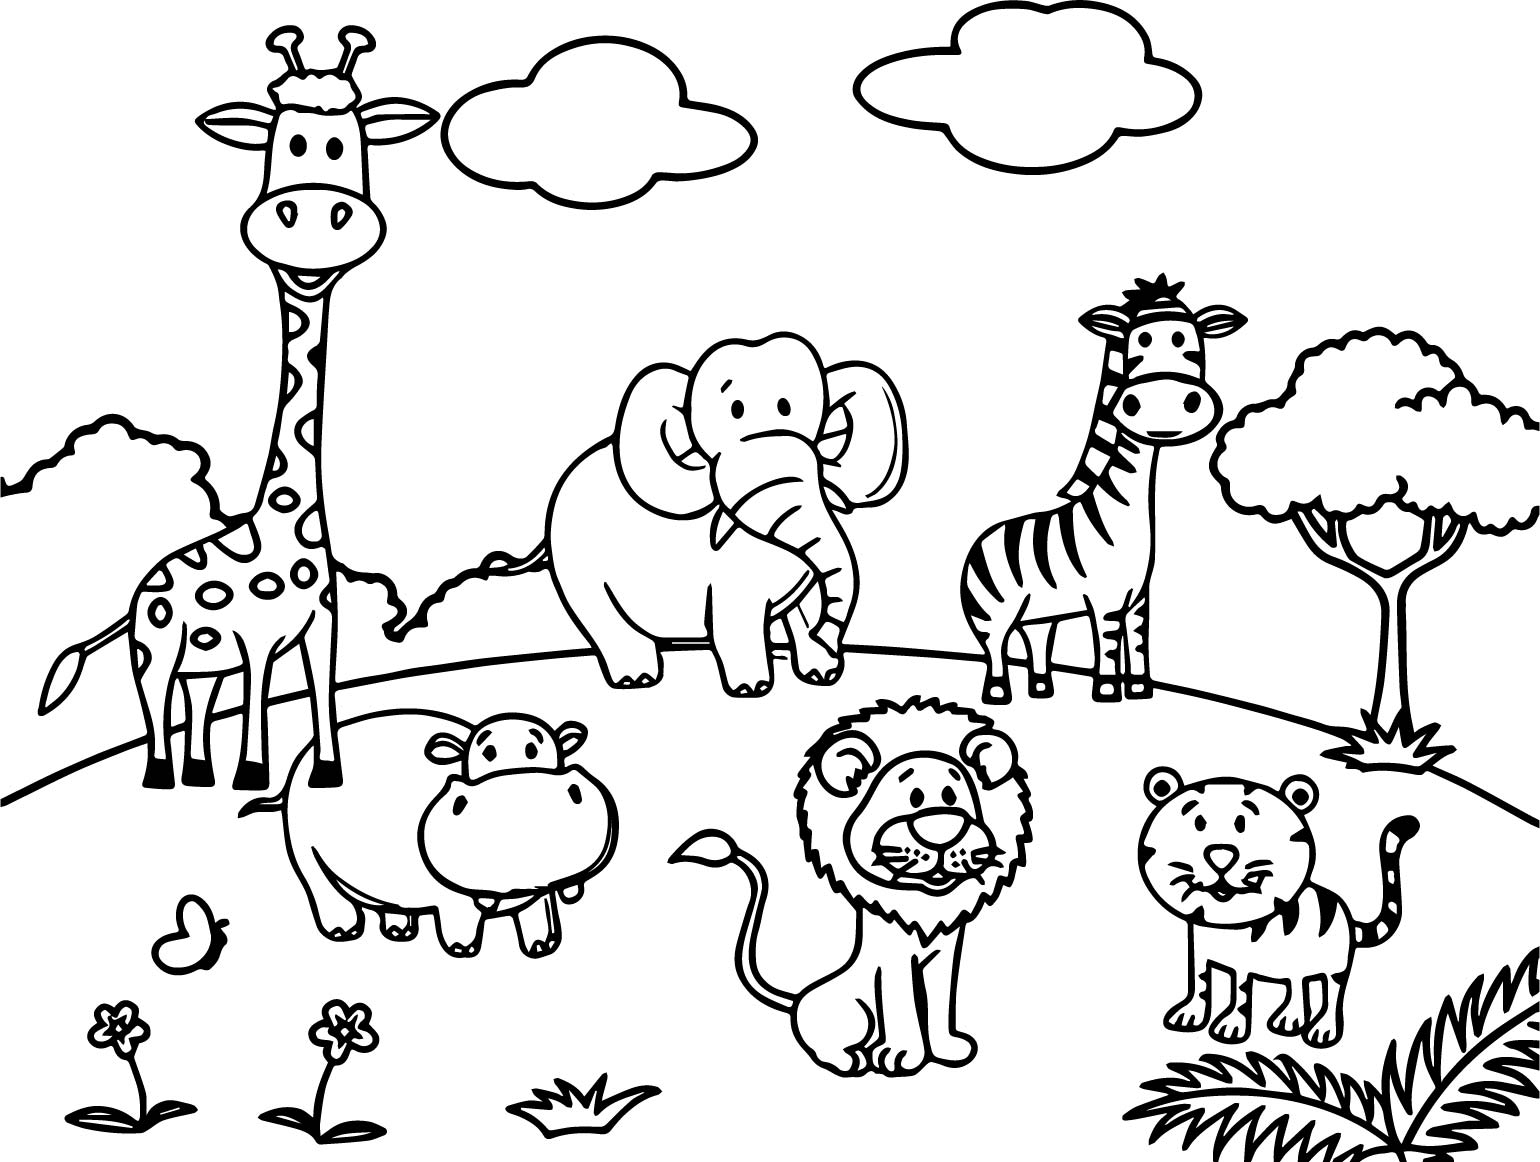 animals drawings to color cartoon animals all coloring page wecoloringpagecom color drawings to animals